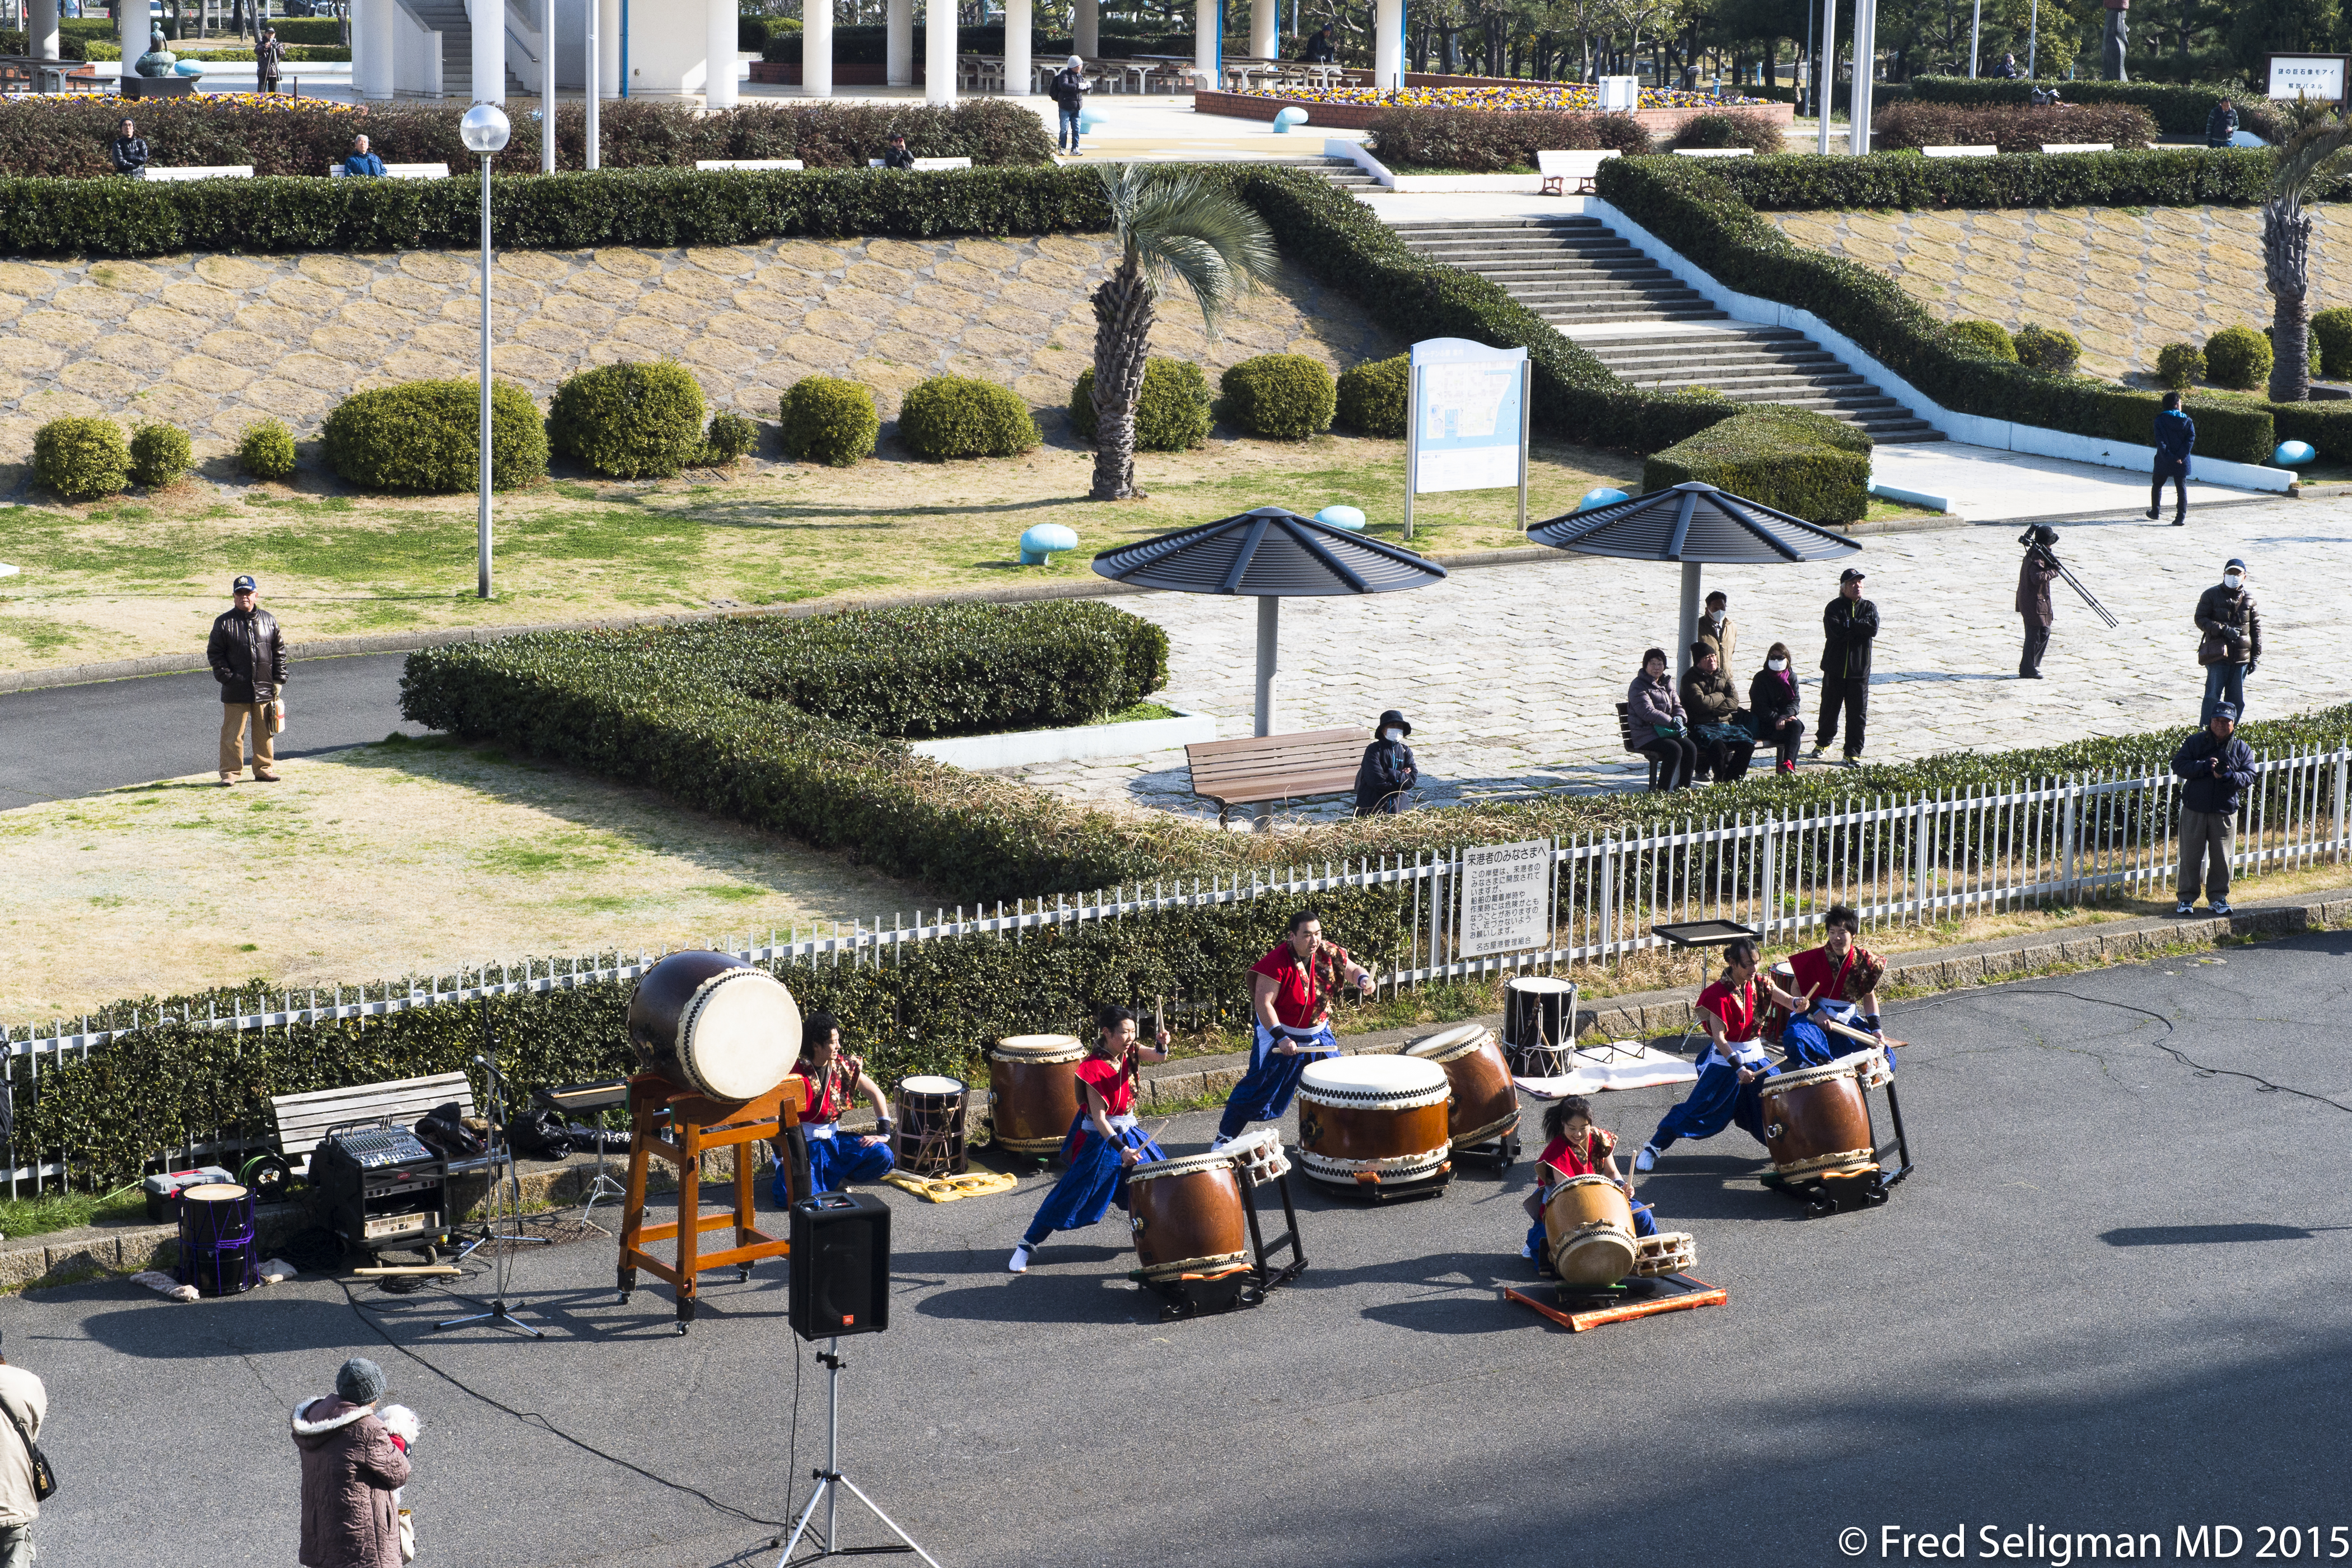 20150312_085735 D4S.jpg - Welcome to Nagoya